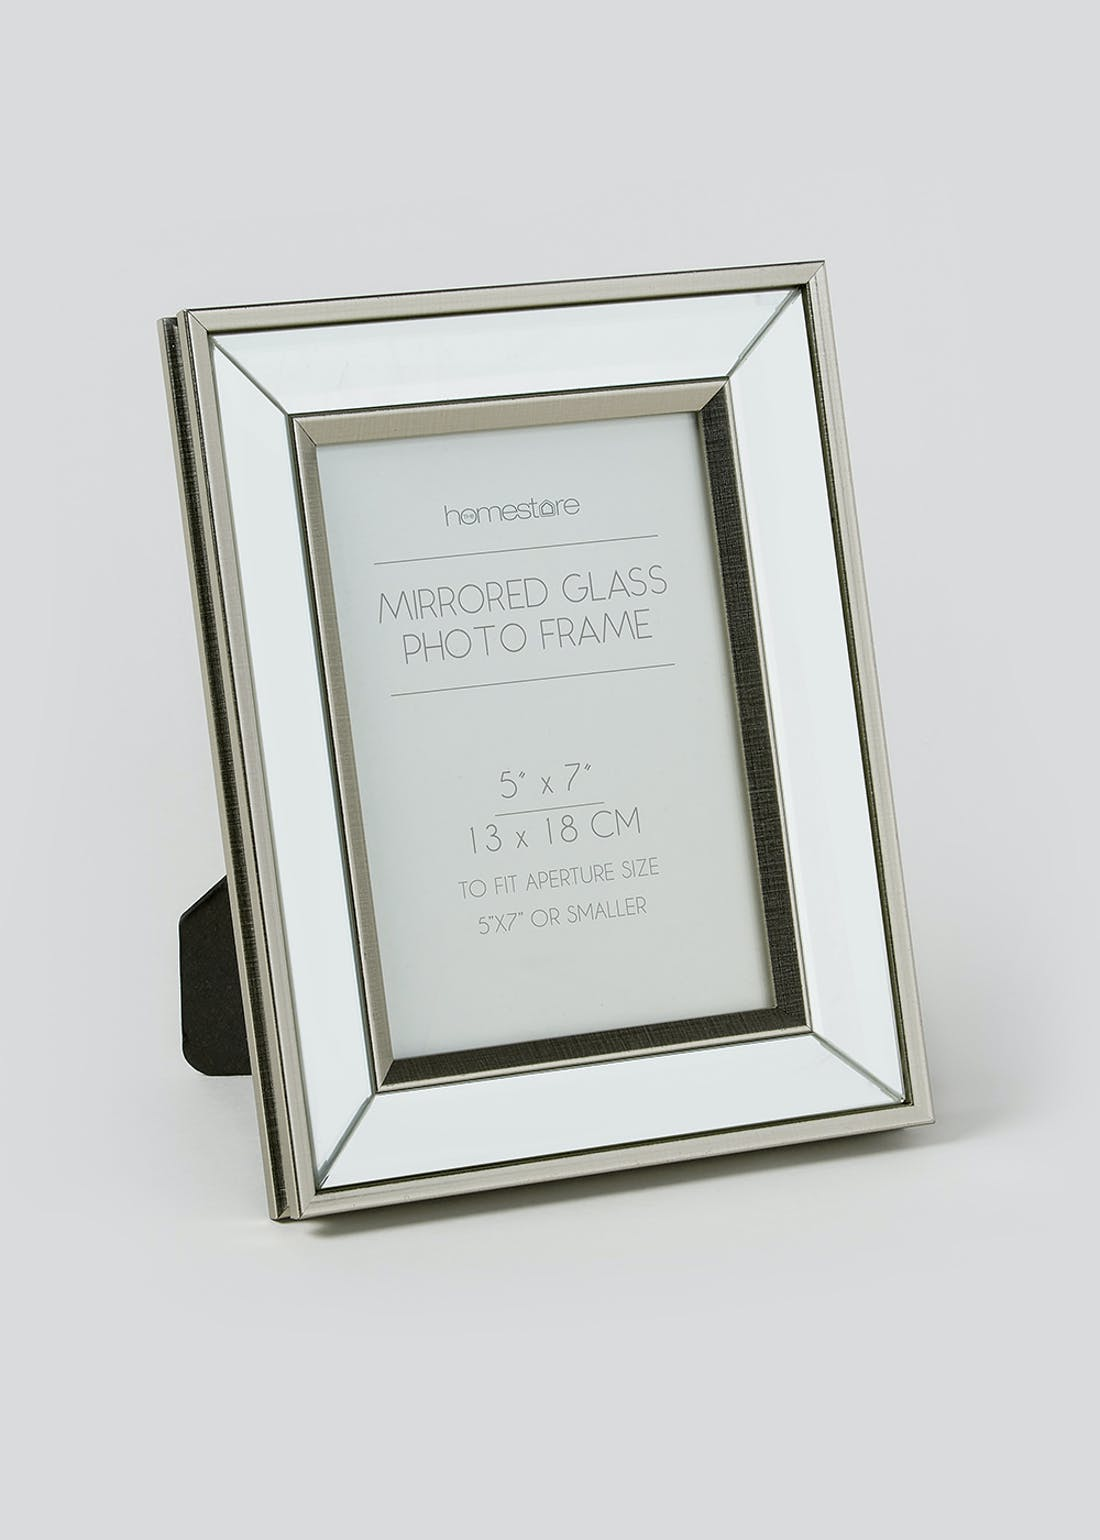 Mirrored Photo Frame (24cm x 19cm)